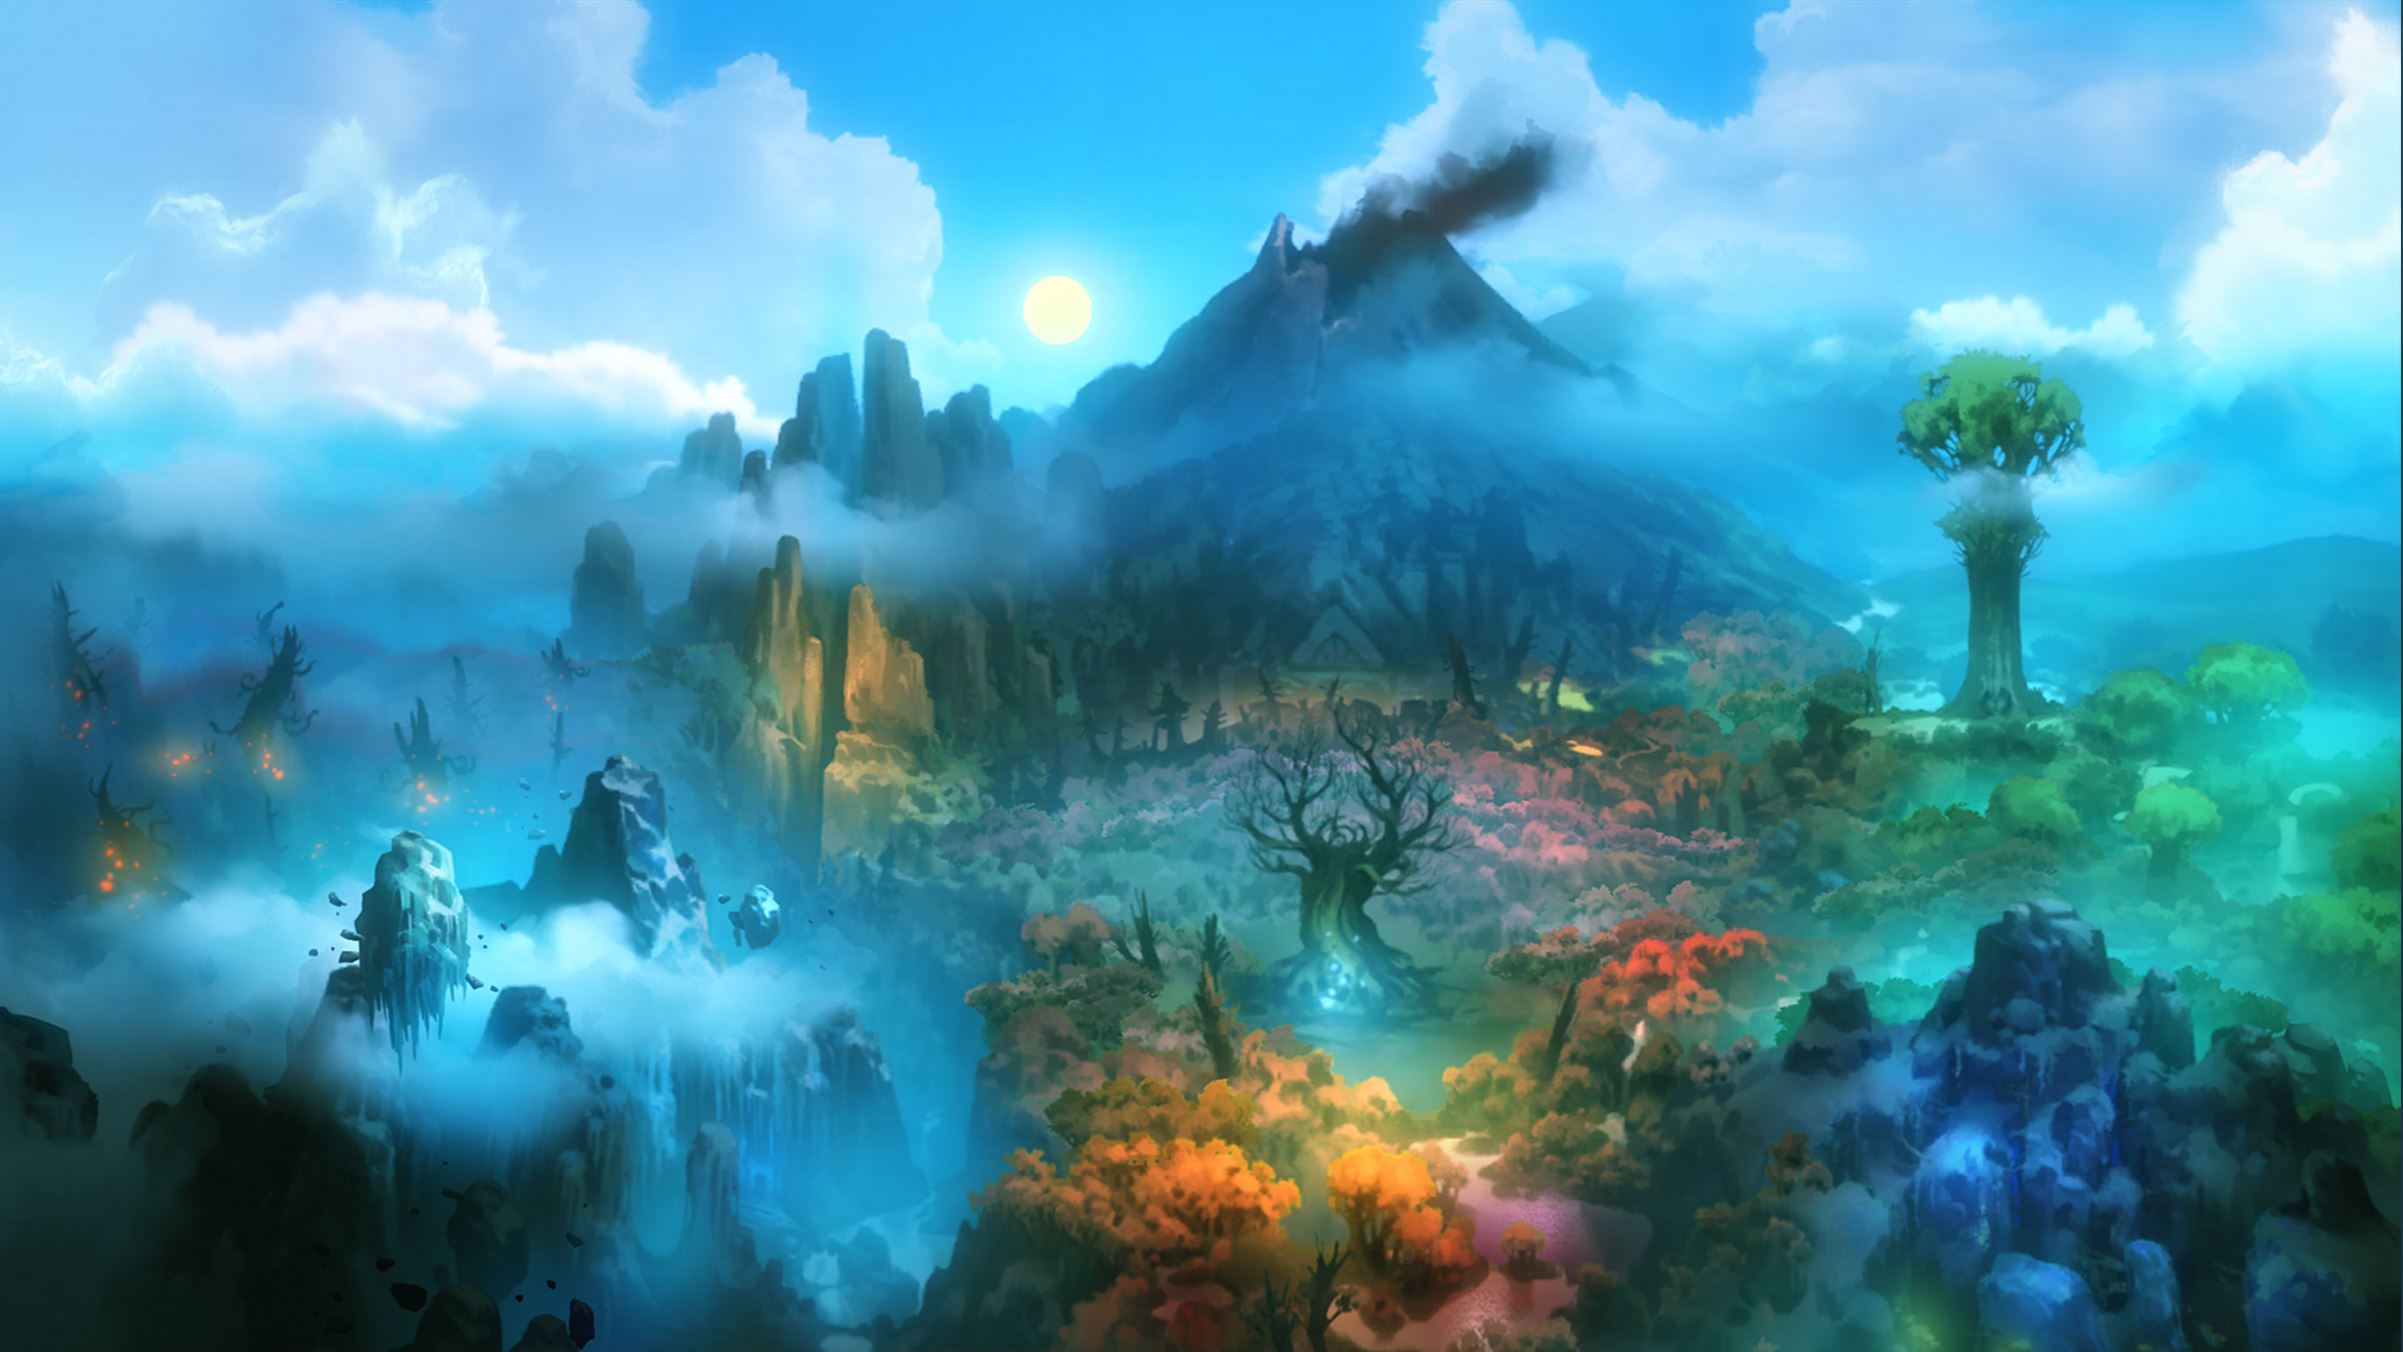 ori and blind forest indie game art design